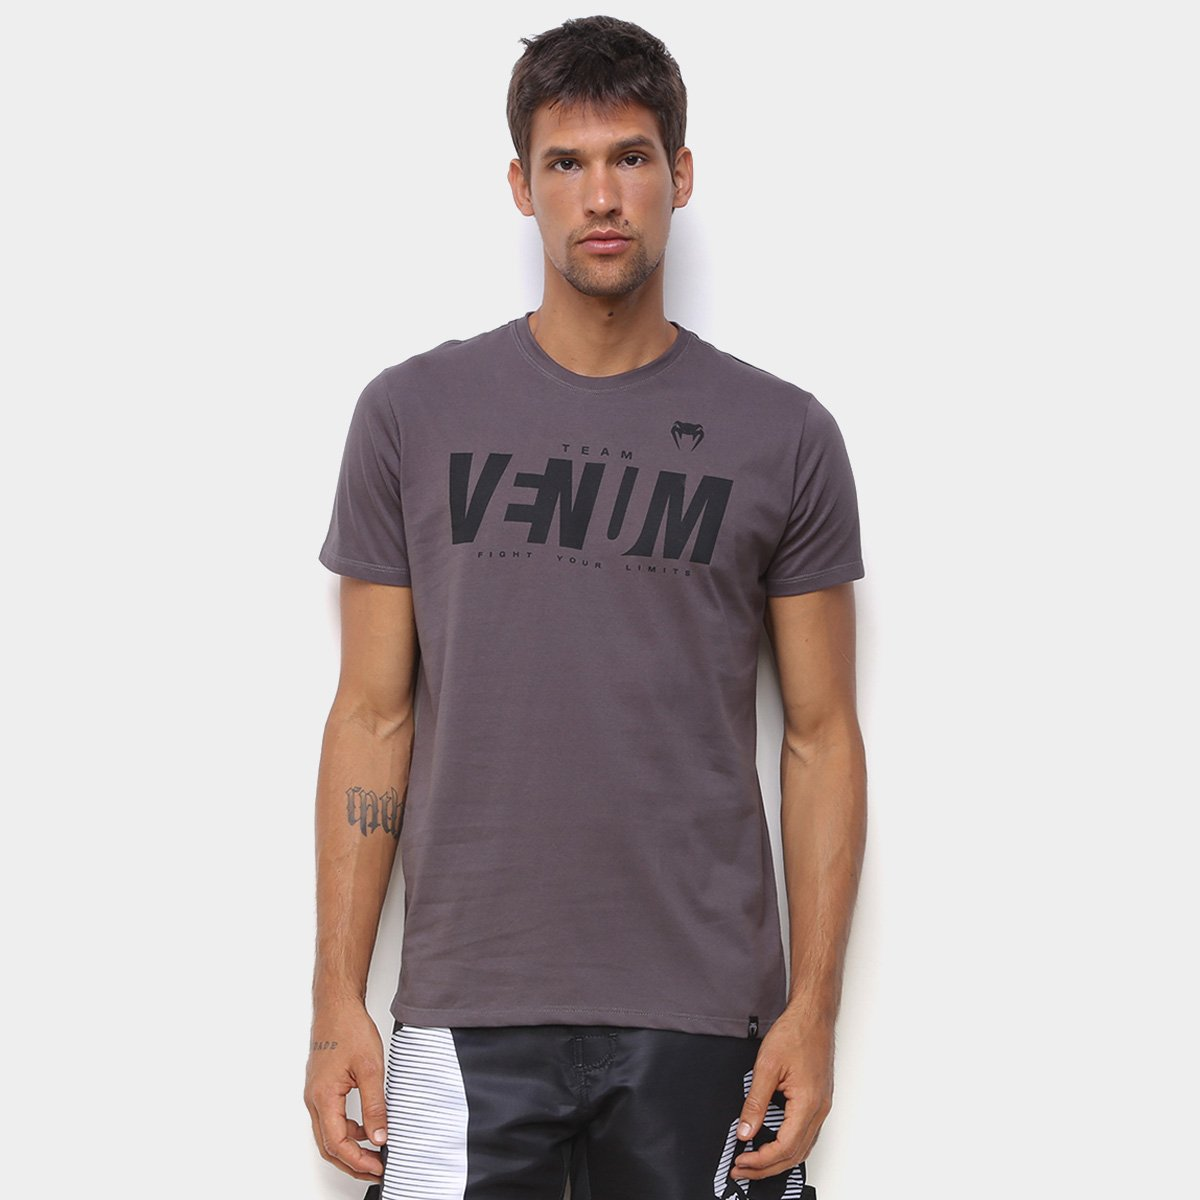 Camiseta Venum Fight Your Limits Masculina